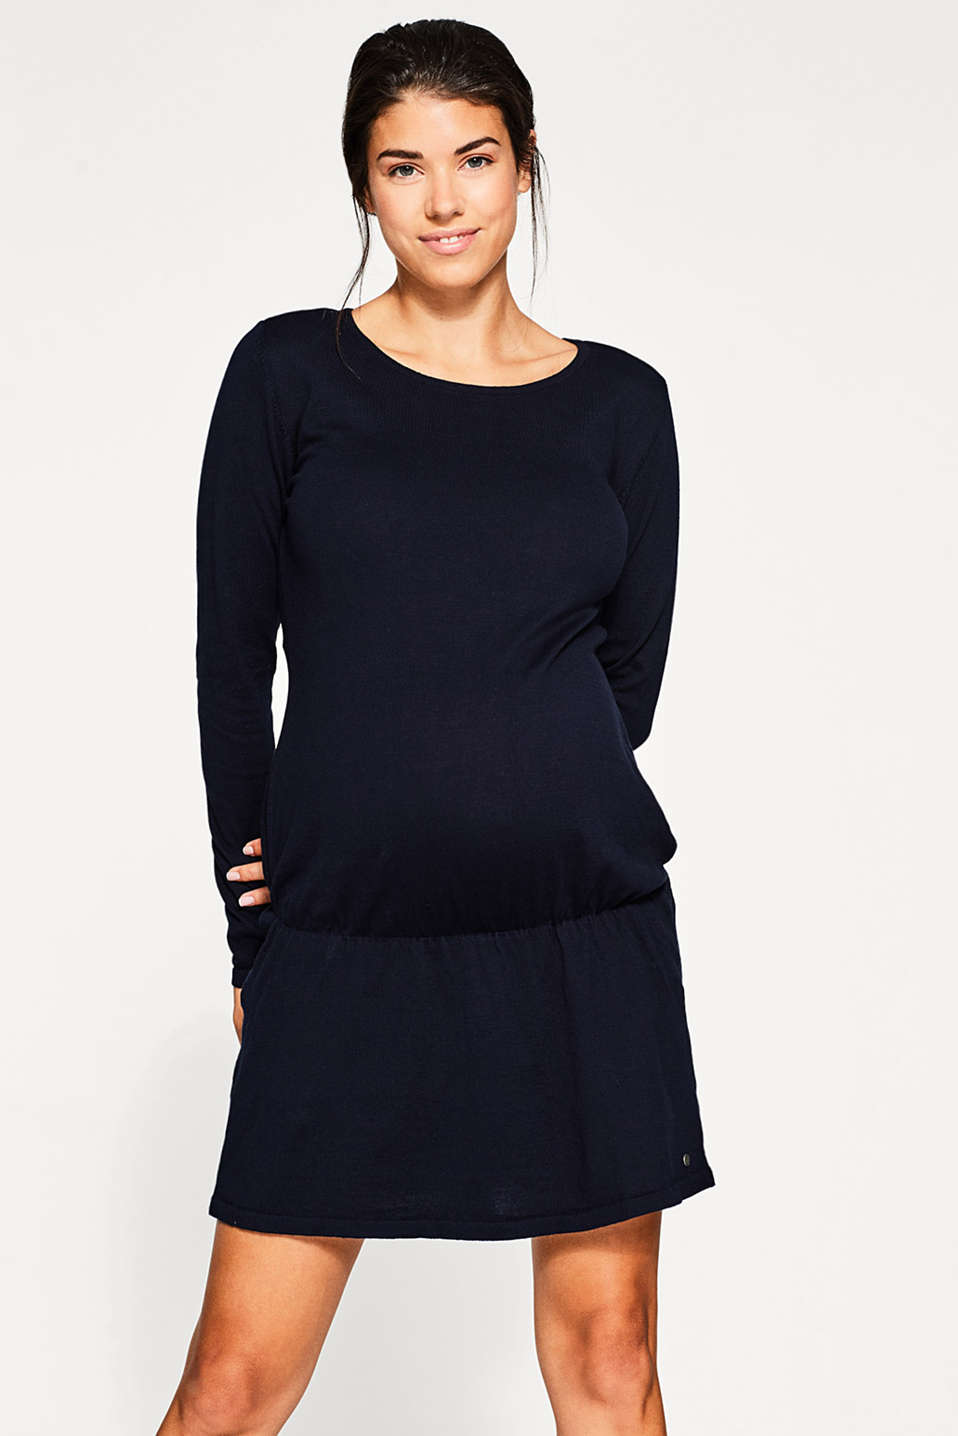 Esprit - Fine-knit tunic in 100% cotton